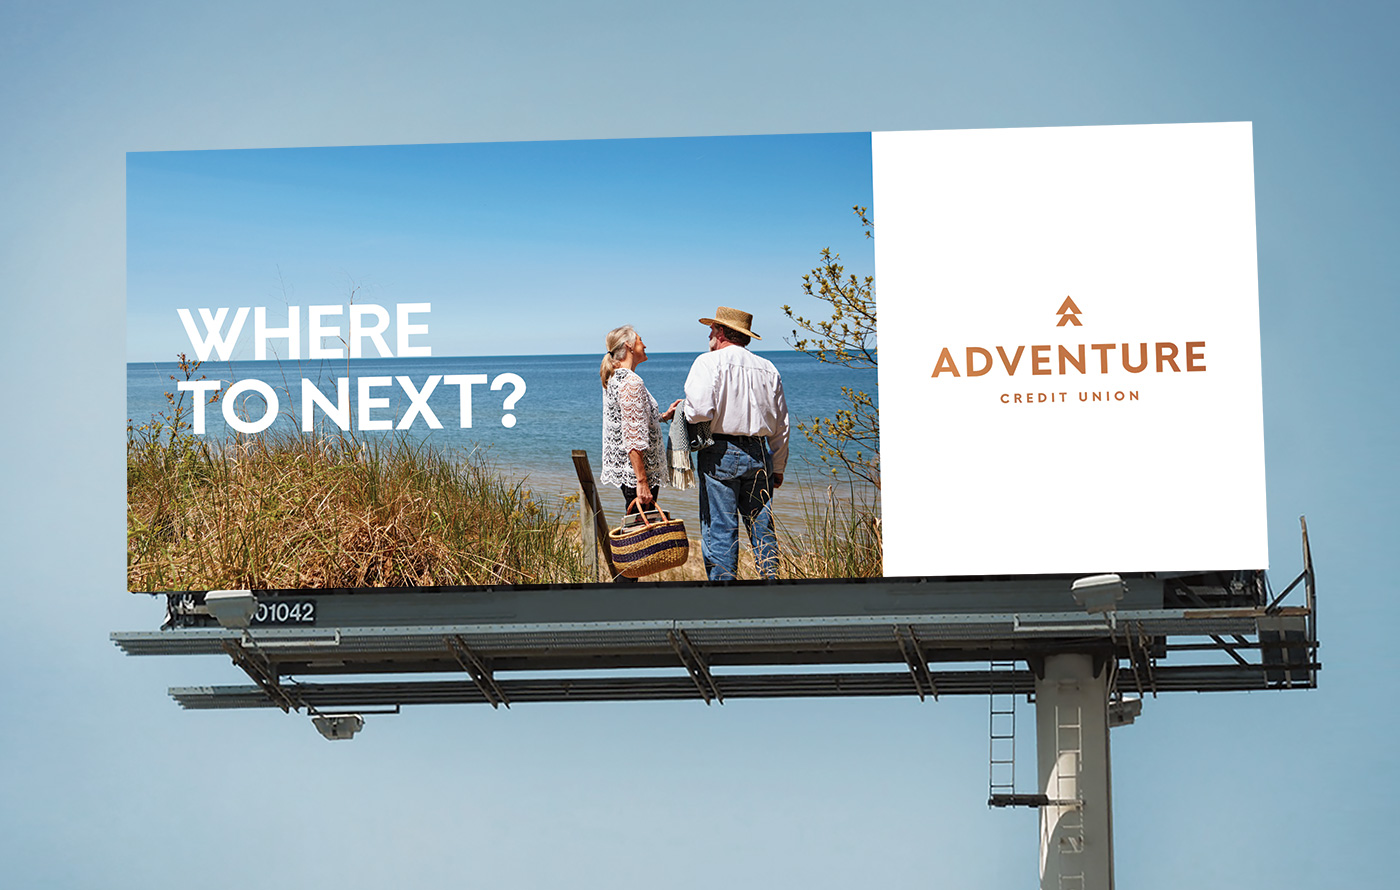 Adventure Credit Union billboard